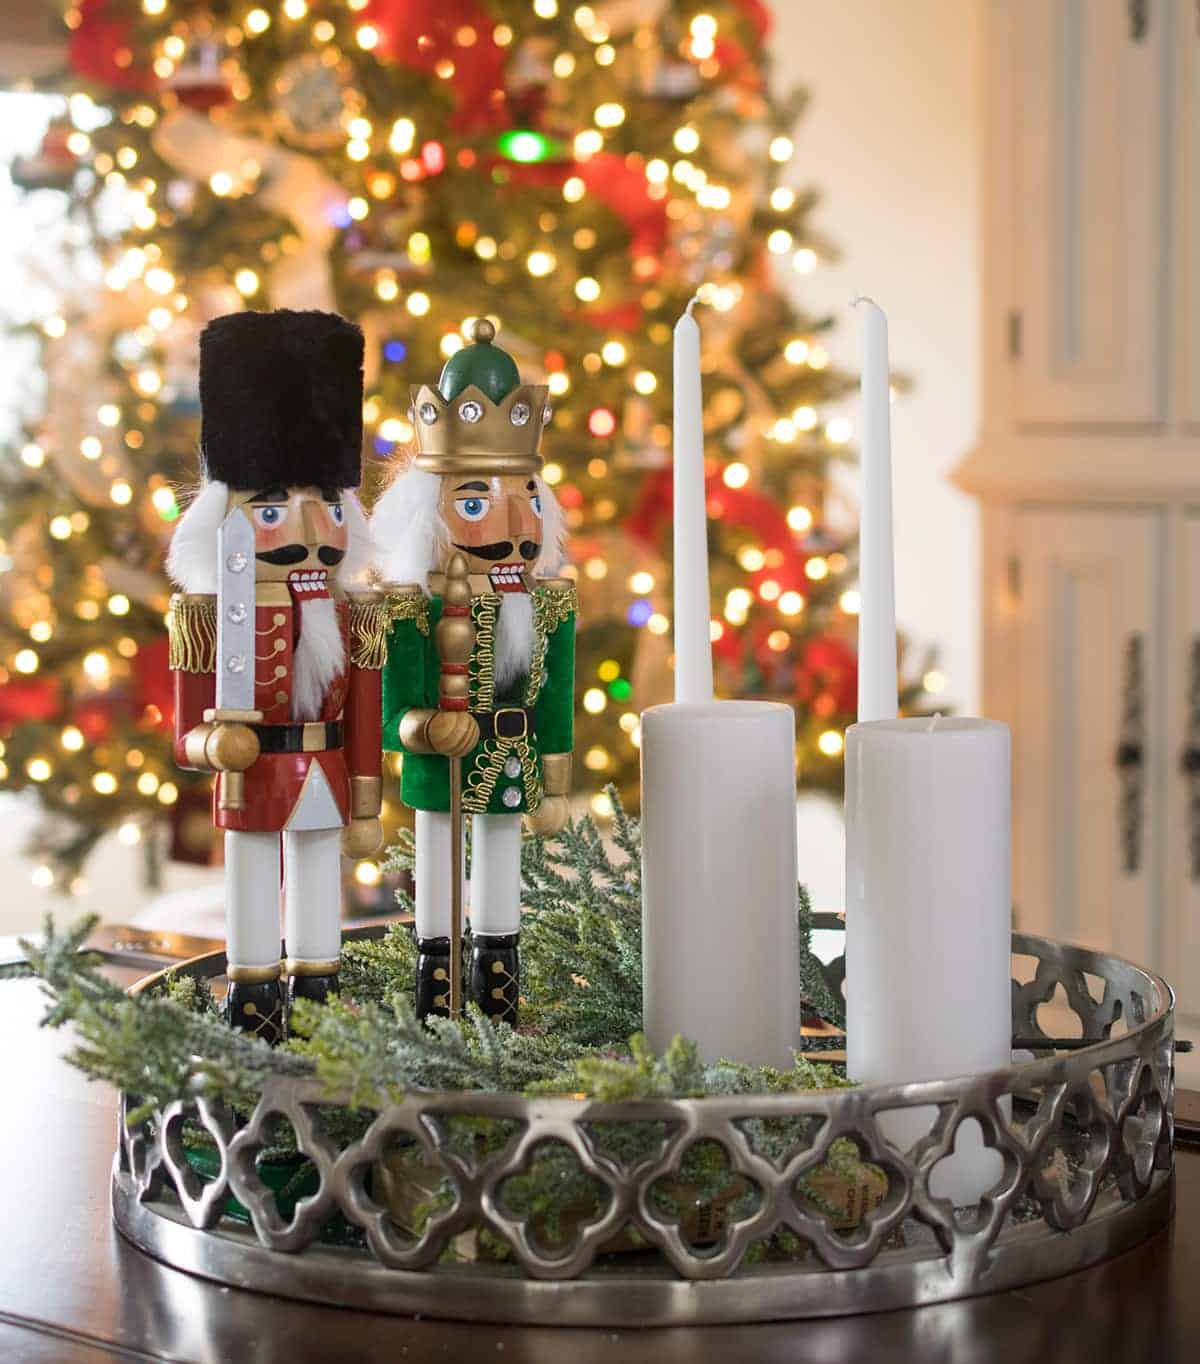 Nutcracker and candle sticks coffee table centerpiece idea with greenery.